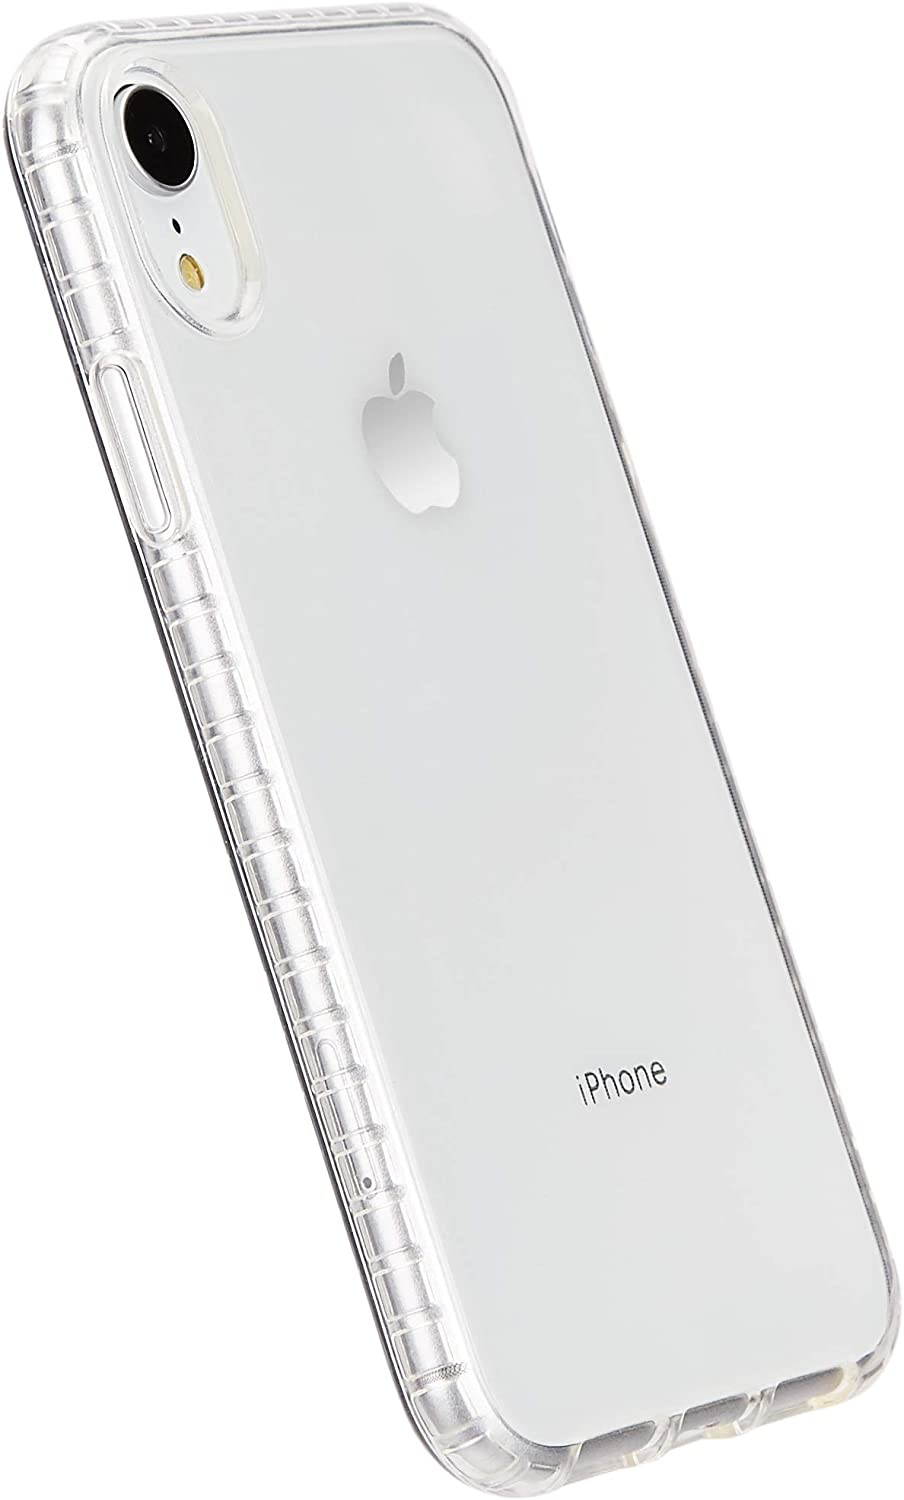 AmazonBasics iPhone XR Clear Case - Crystal Mobile Phone Case (Protective & Anti Scratch)